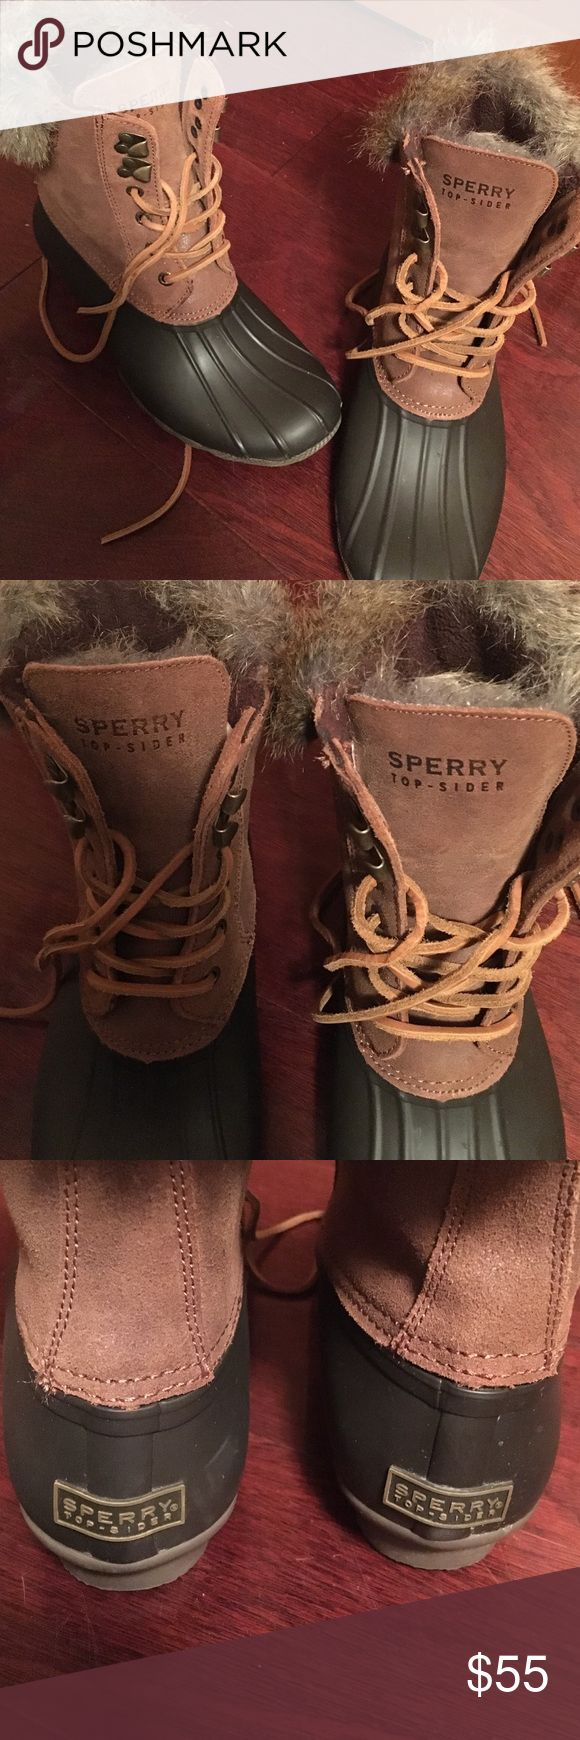 Brown sperry winter boots with fur Sperry two toned boots with fur they are a very comfortable and warm shoe for the winter Sperry Top-Sider Shoes Winter & Rain Boots